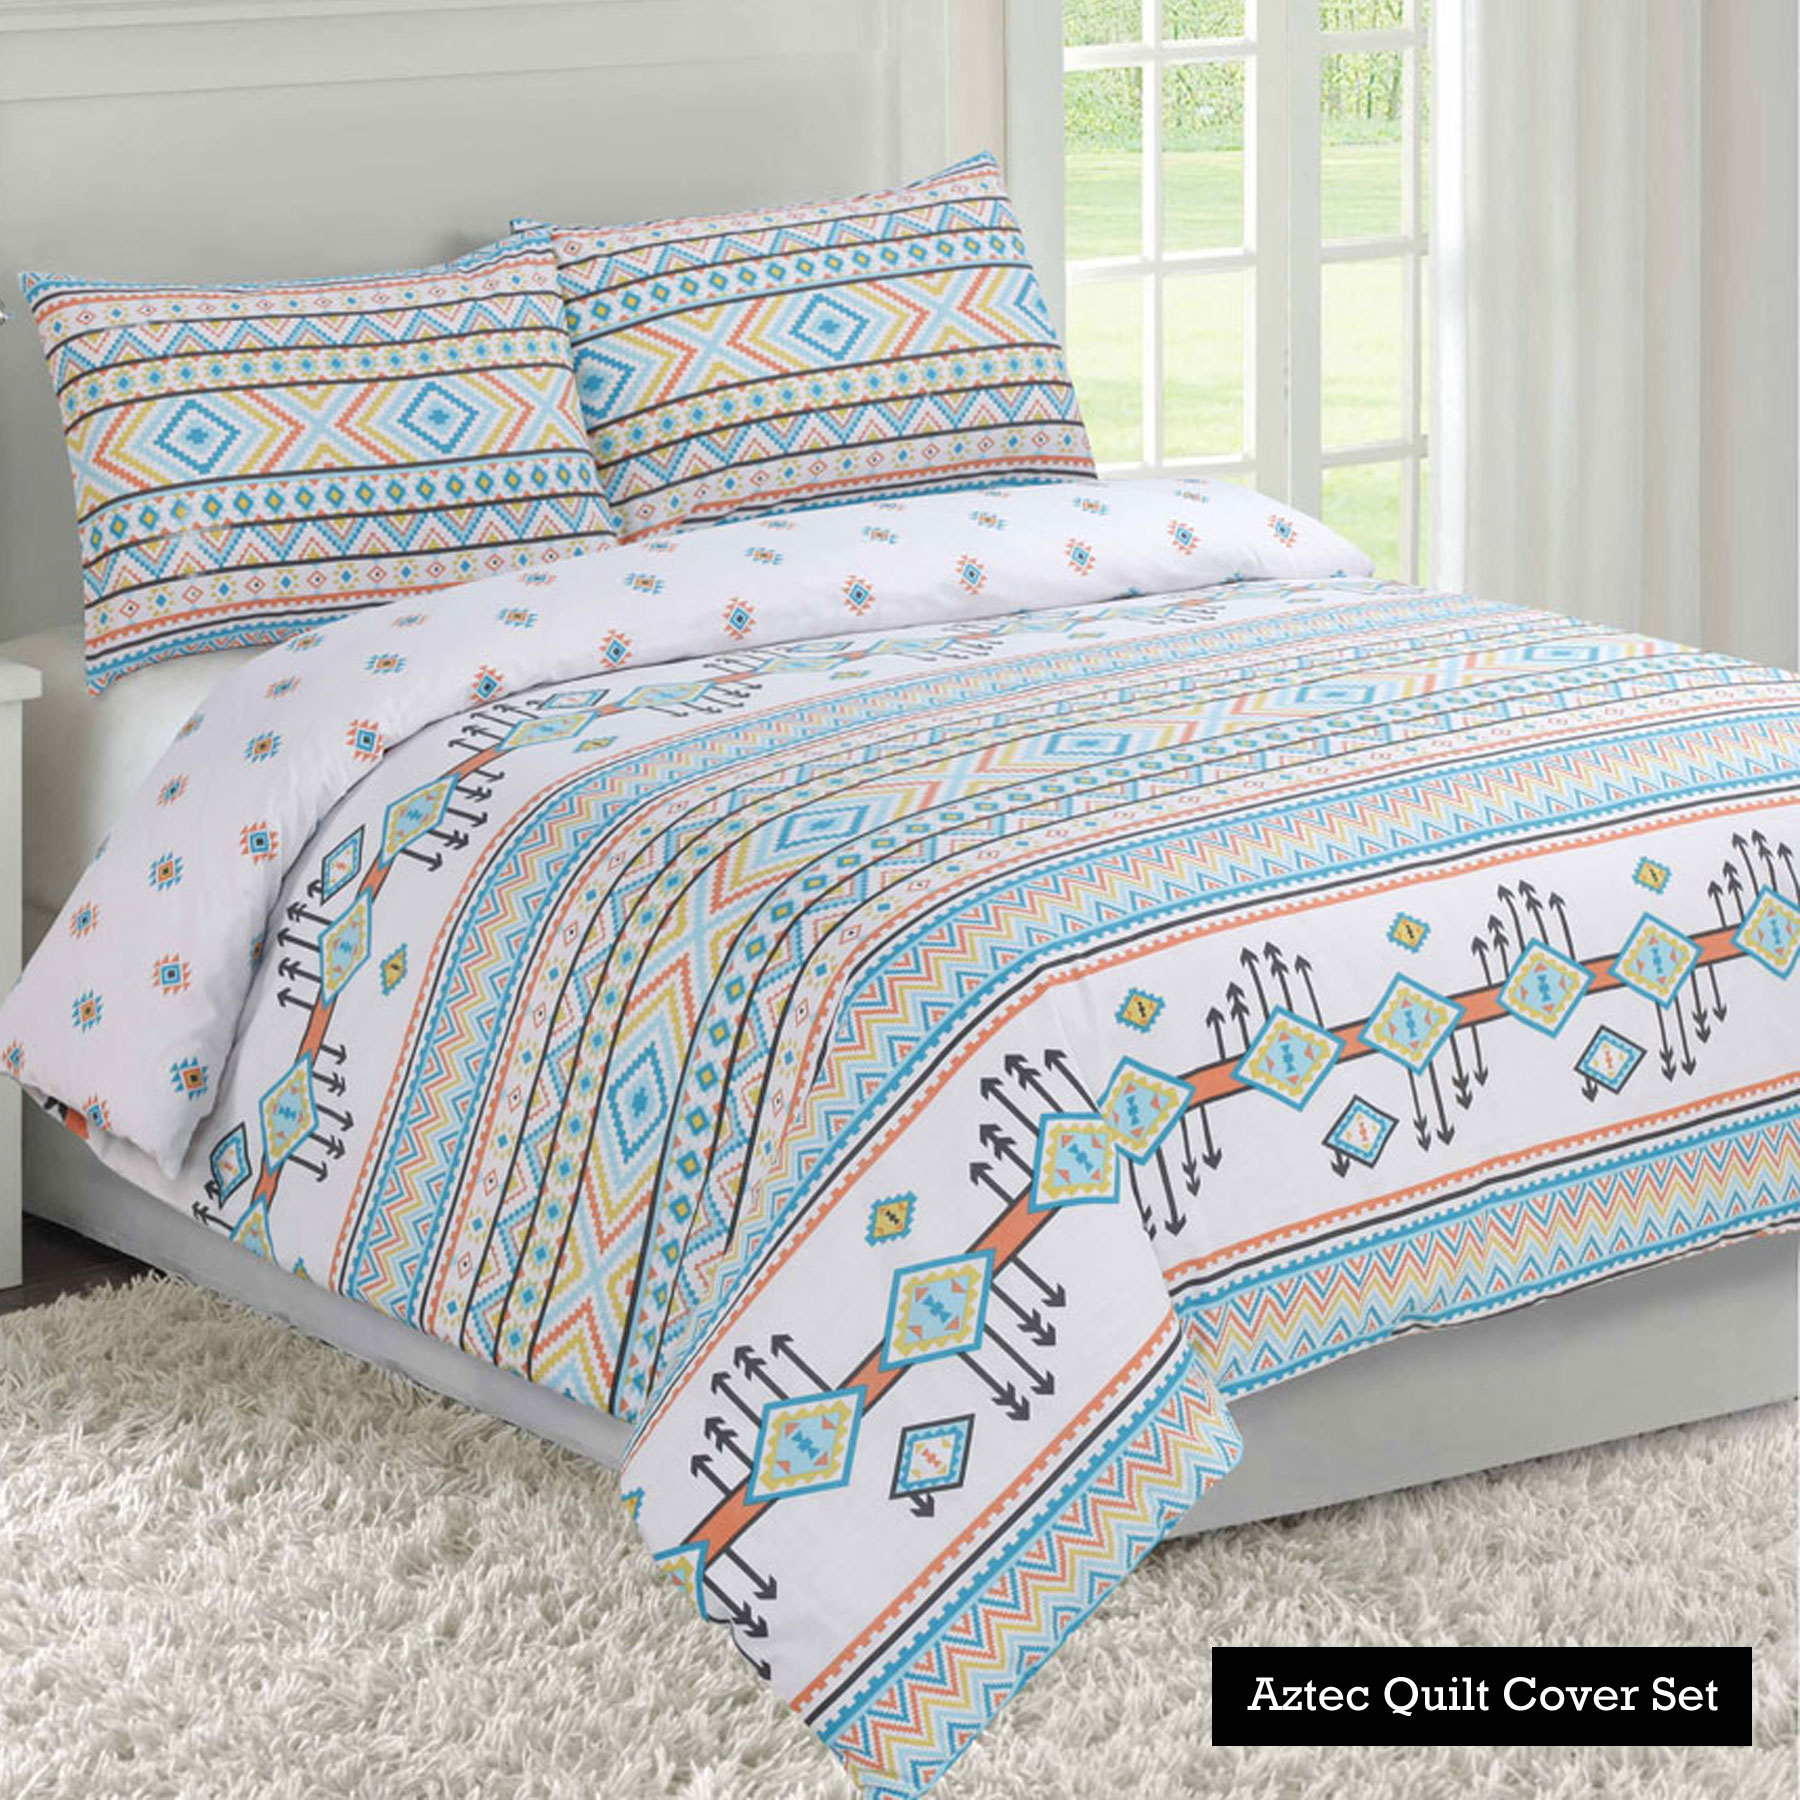 duvets more print full of oc collection bedspreads style covers cover southwestern western bedding accents native hiend set fl southwest n size american chambray w comforter by accessories duvet blue aztec